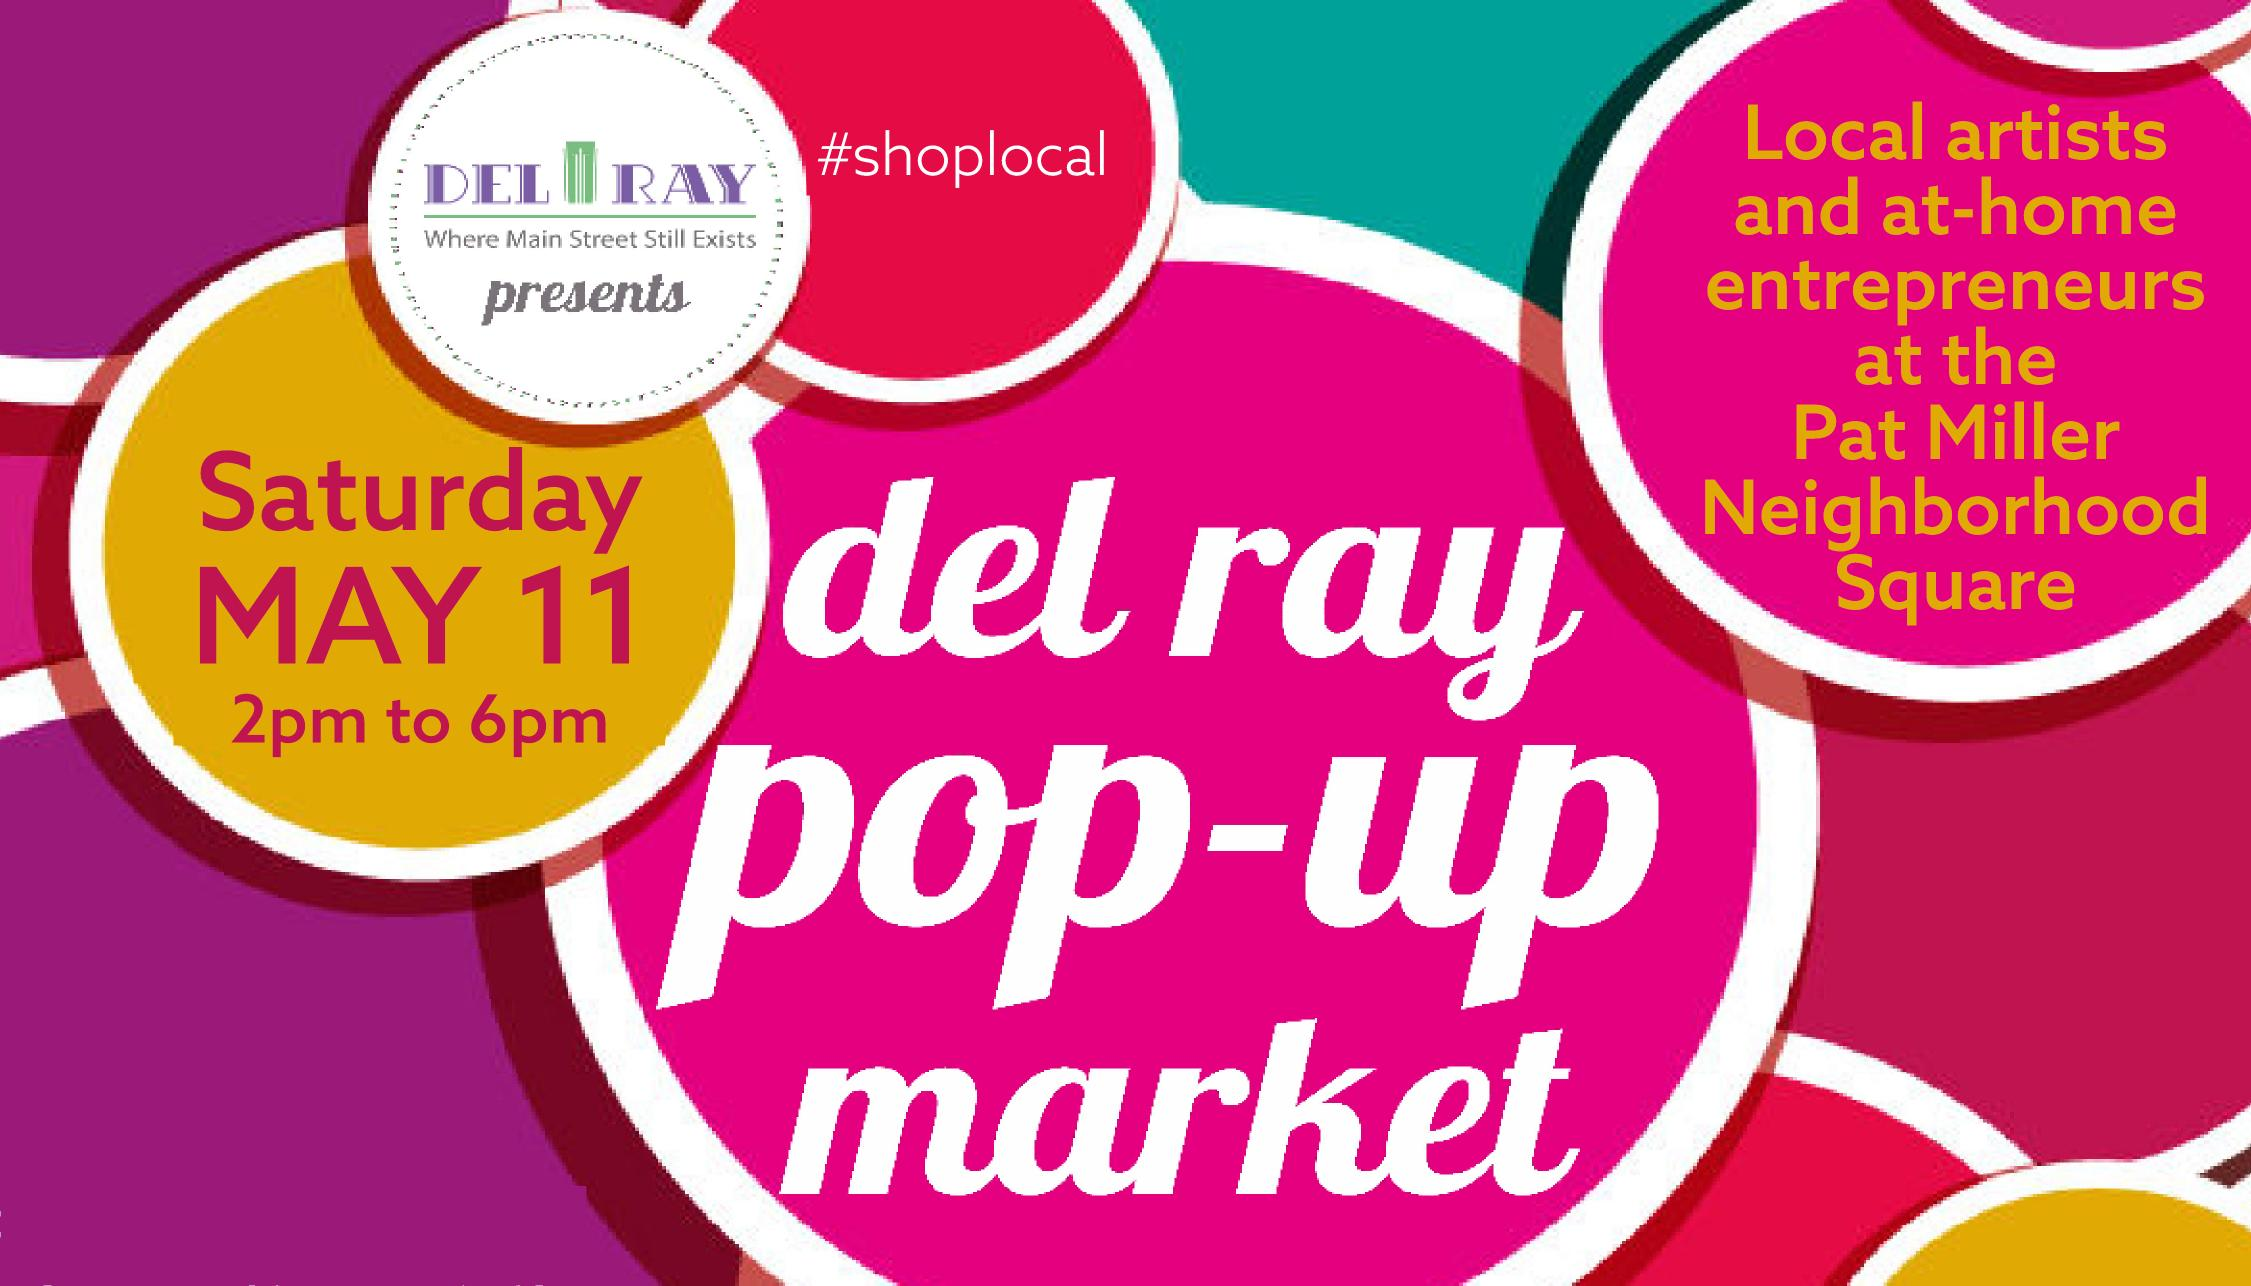 The Del Ray Pop-Up Market is Here